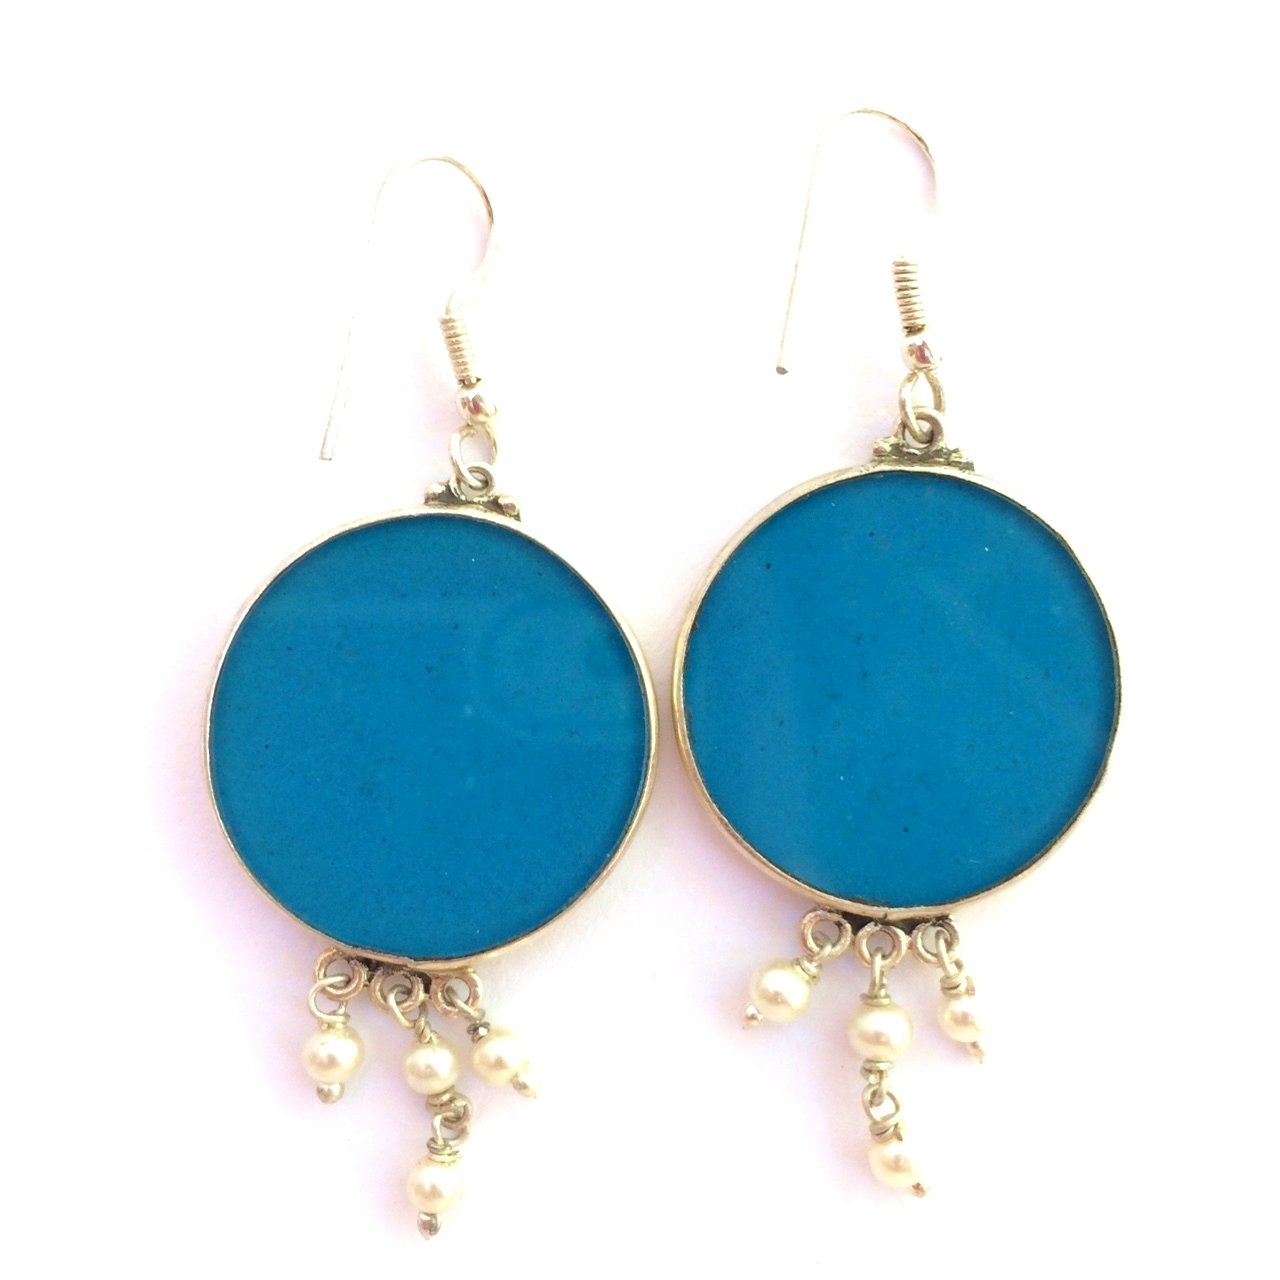 Sri Yantra Sacred Geometry Earrings (turquoise) by Scalar Heart Collection